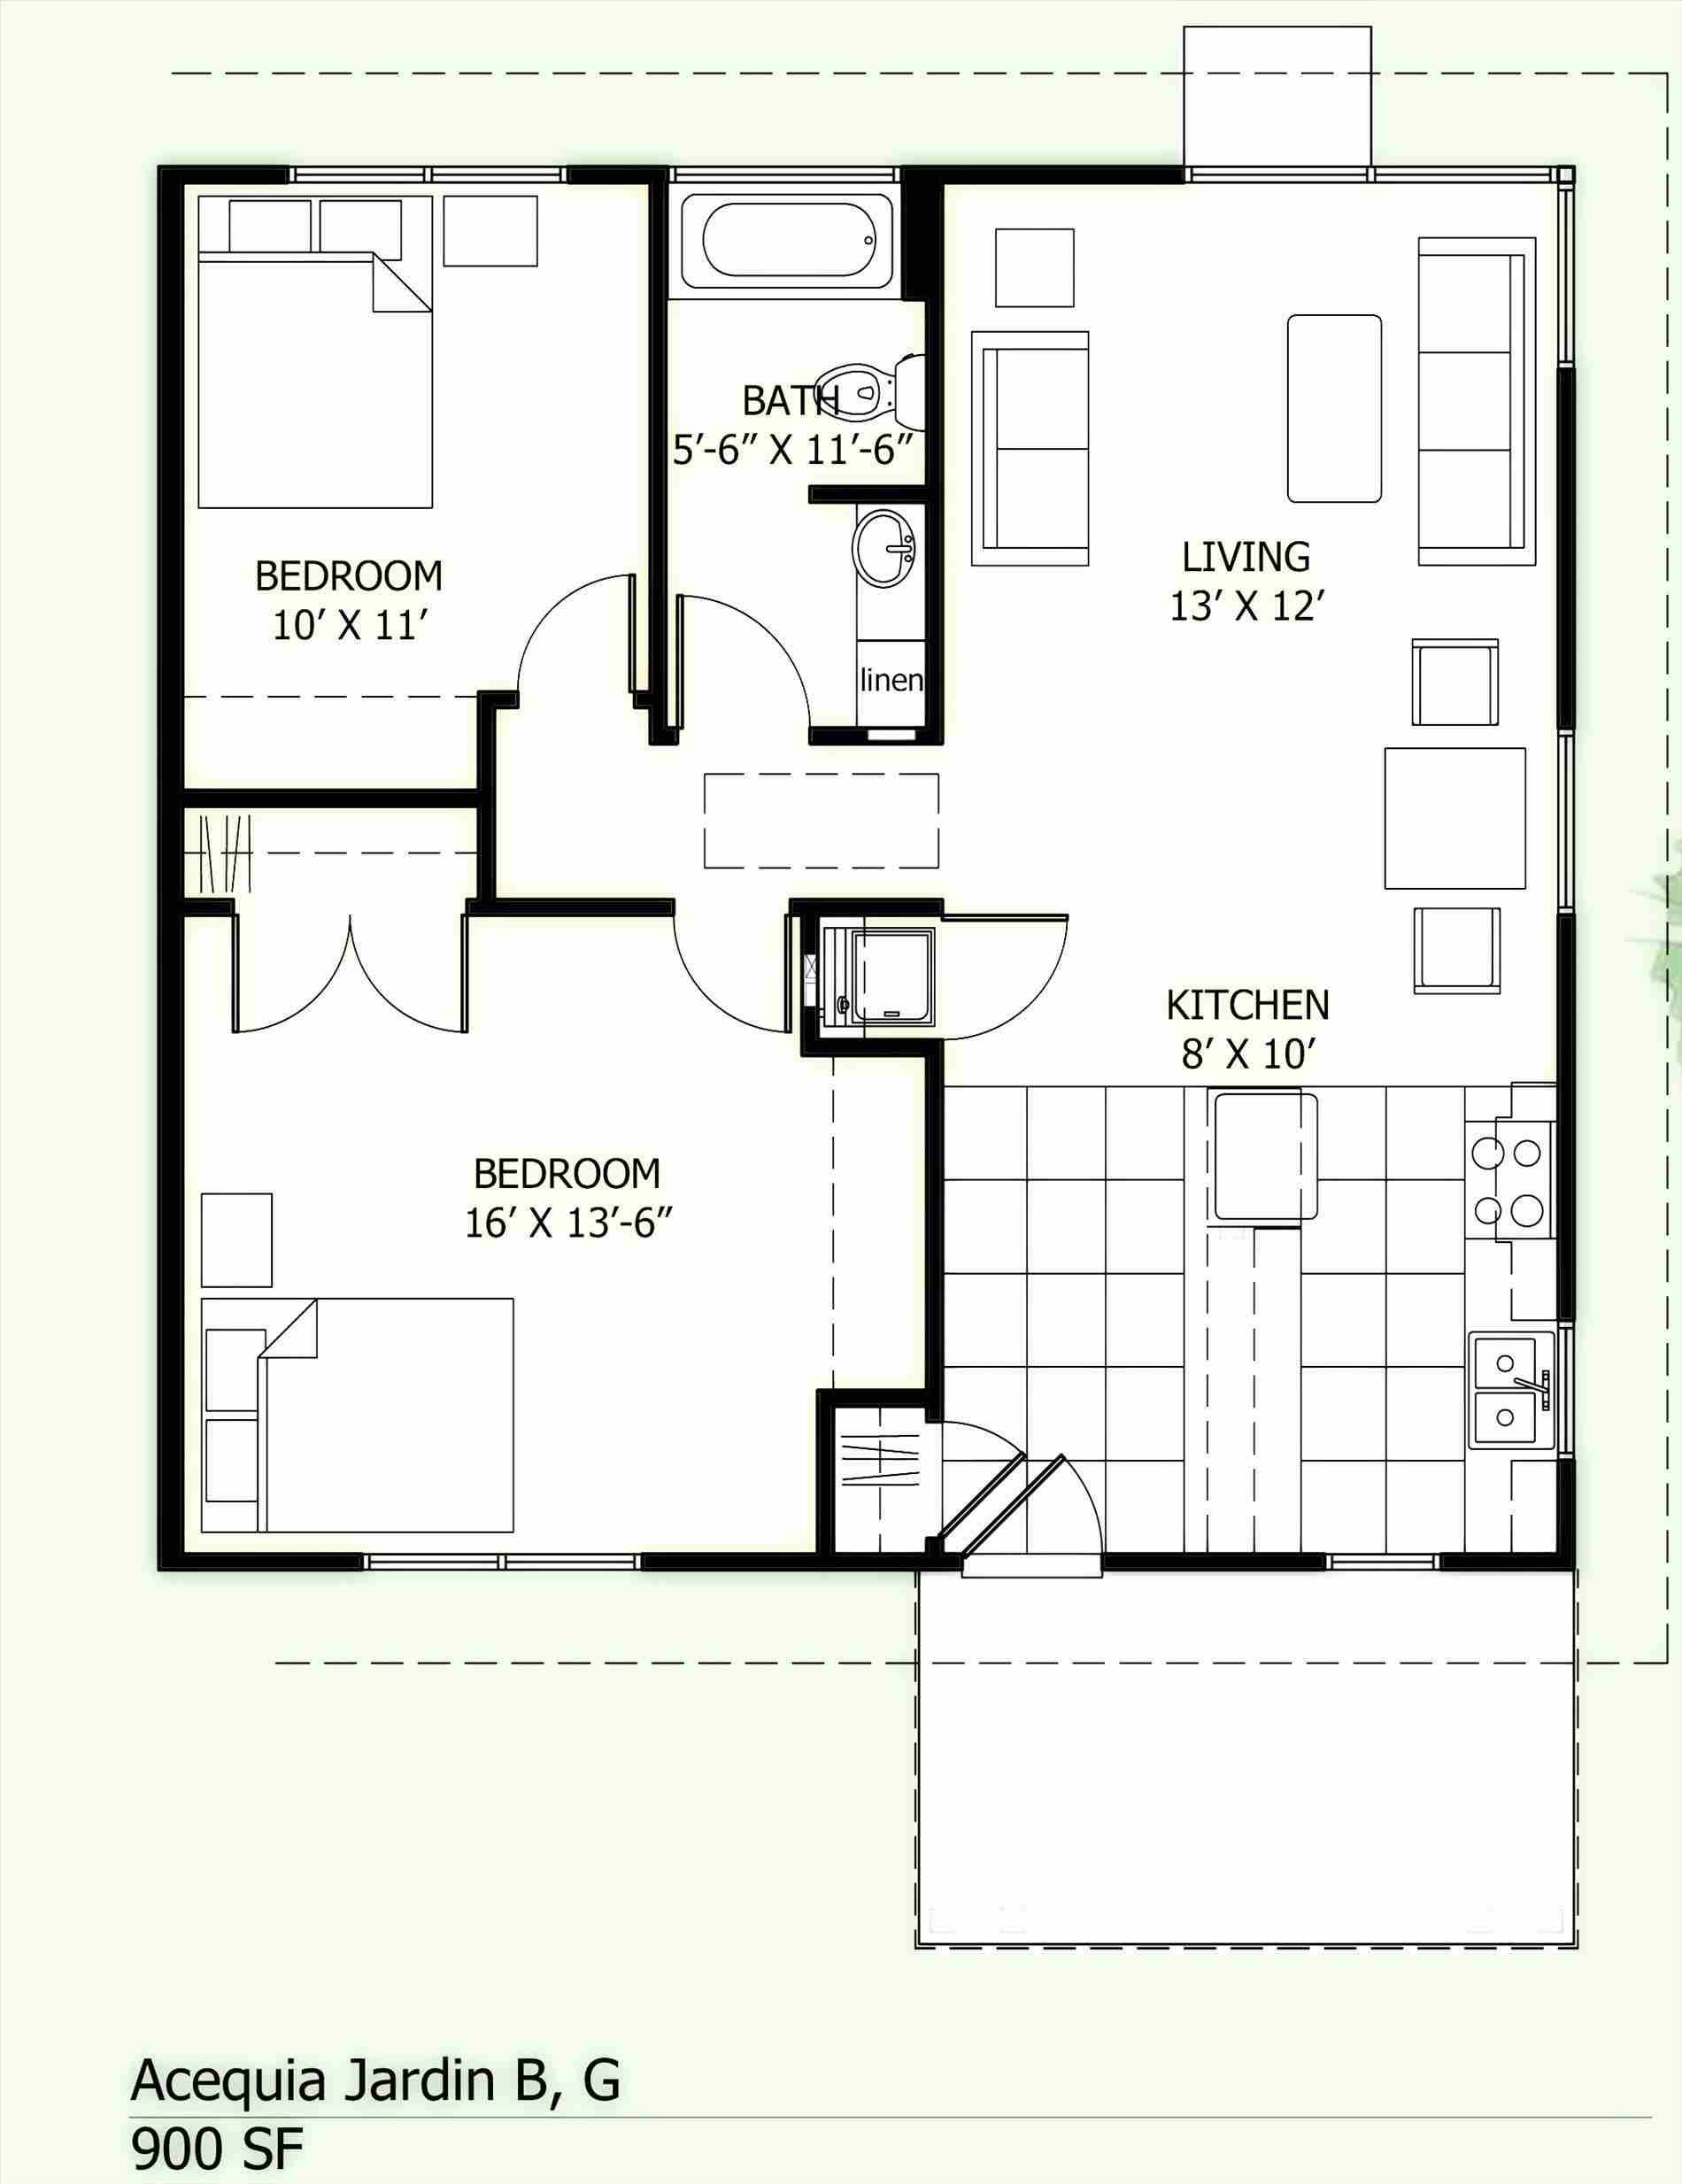 Pin By Pauls Coss On Home Design Plans Small House Floor Plans 20x30 House Plans Duplex House Plans